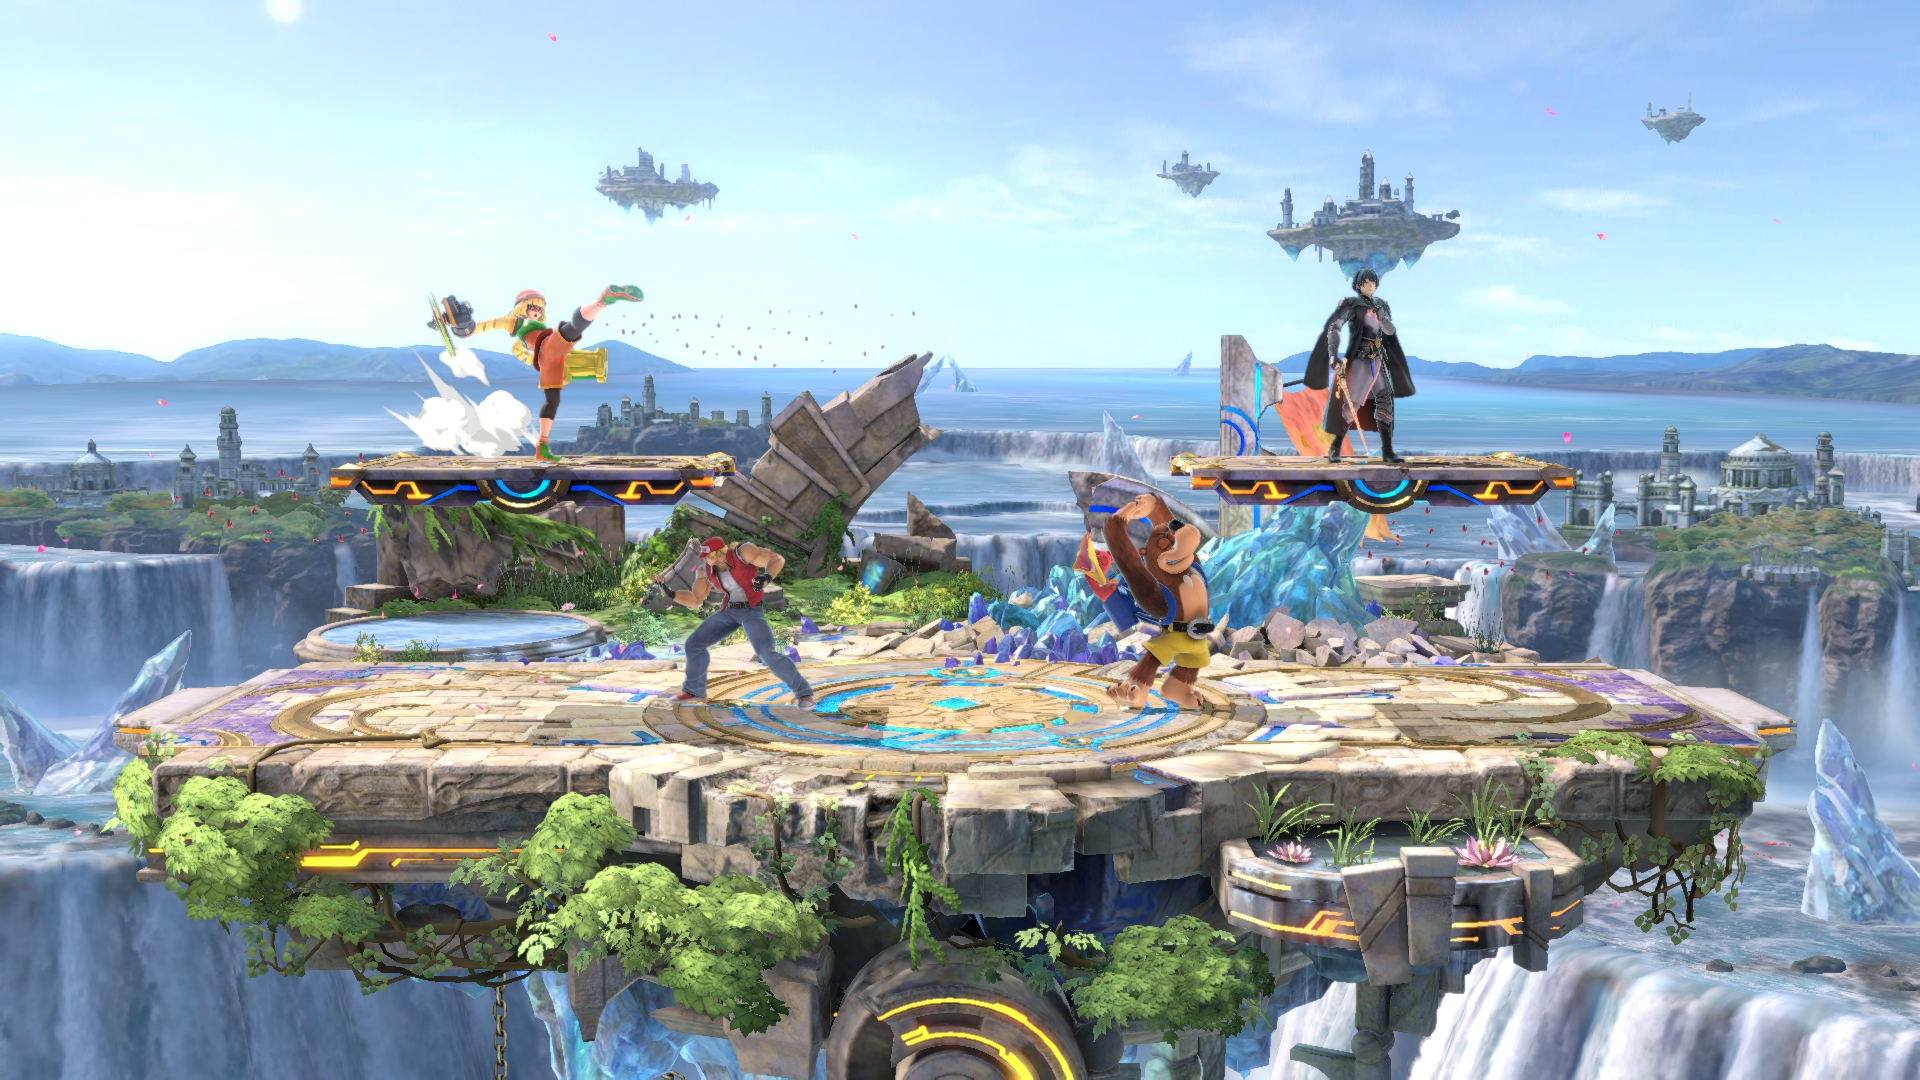 The latest Smash Ultimate patch comes with a new modified stage screenshot